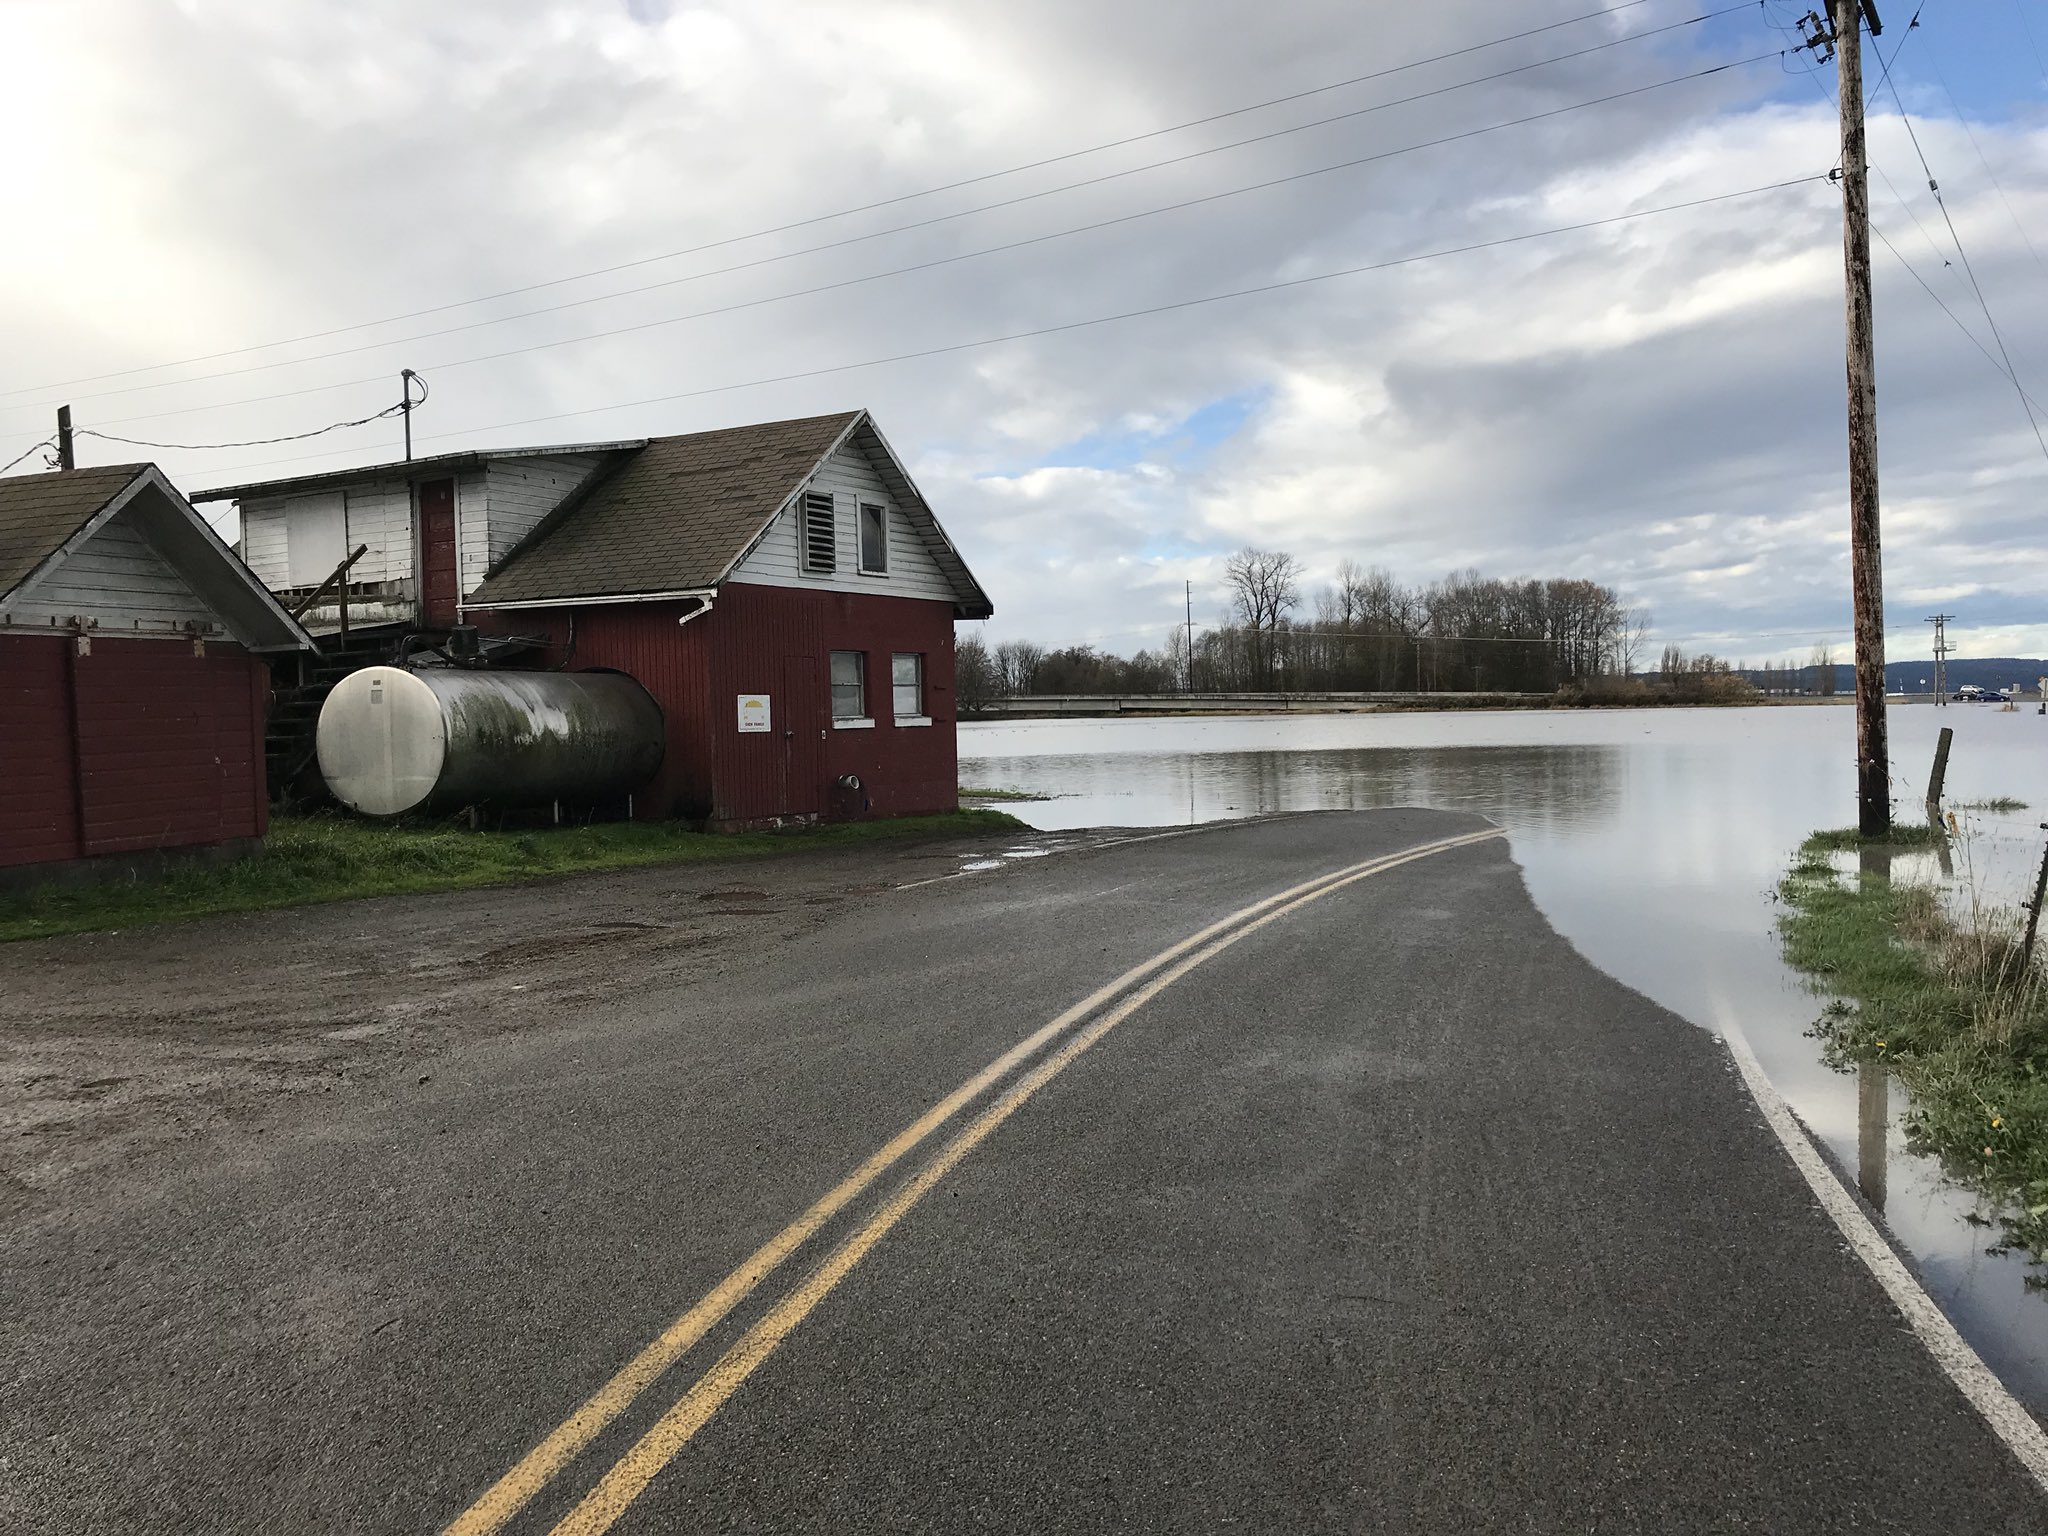 Flood waters covering Norman Rd. in Stanwood (Photo: Benjamin Jurkovich)<p></p>